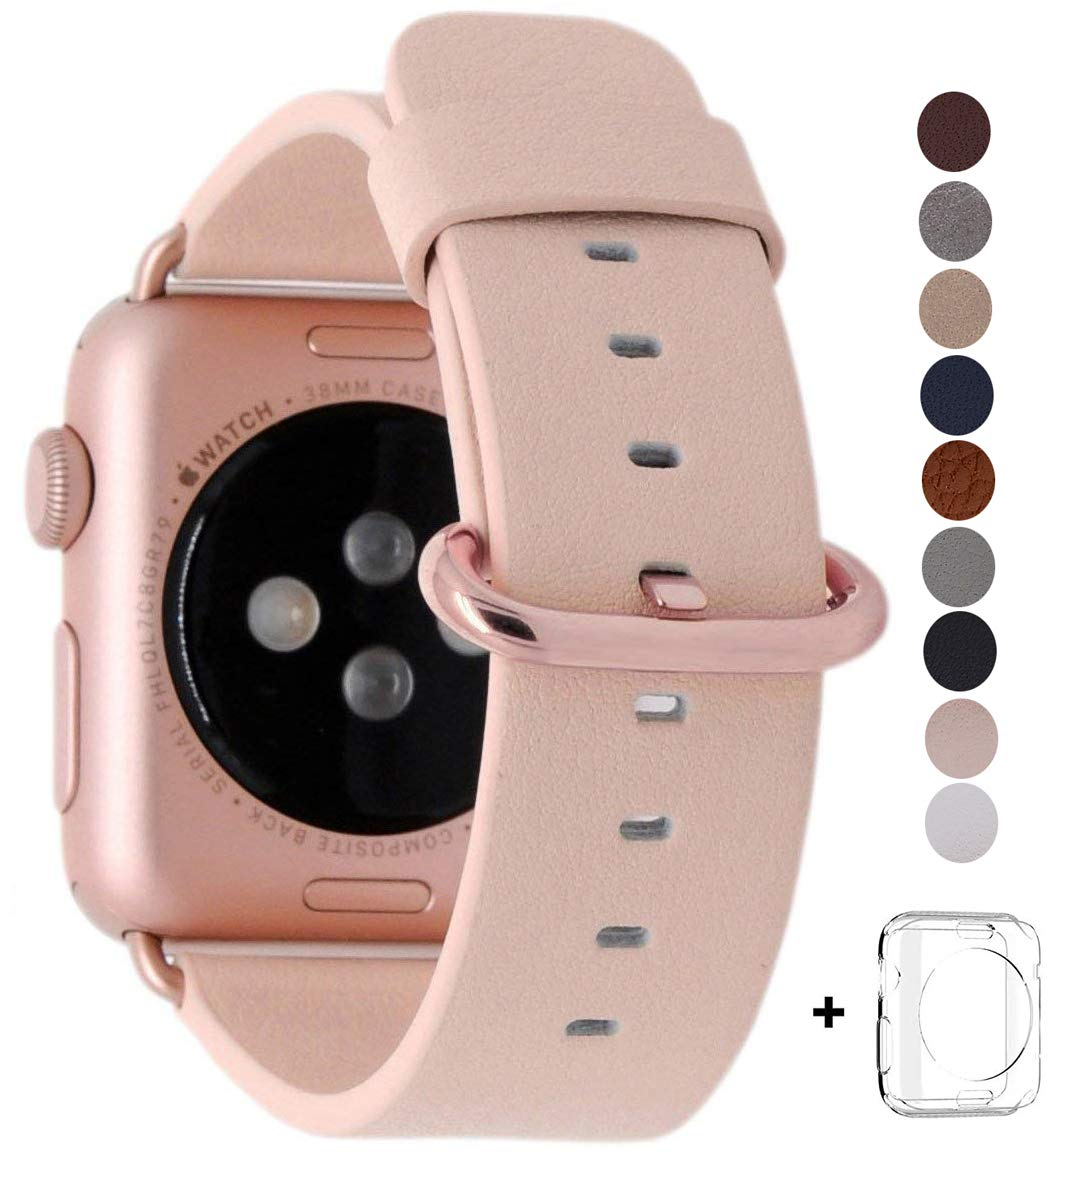 JSGJMY Compatible Apple Watch Band 42mm Women Genuine Leather Loop Rose Gold Metal Clasp Compatible Apple Watch Series 3/Series 2/Series 1/Edition/Sport(Soft Pink+Rose Gold Buckle)